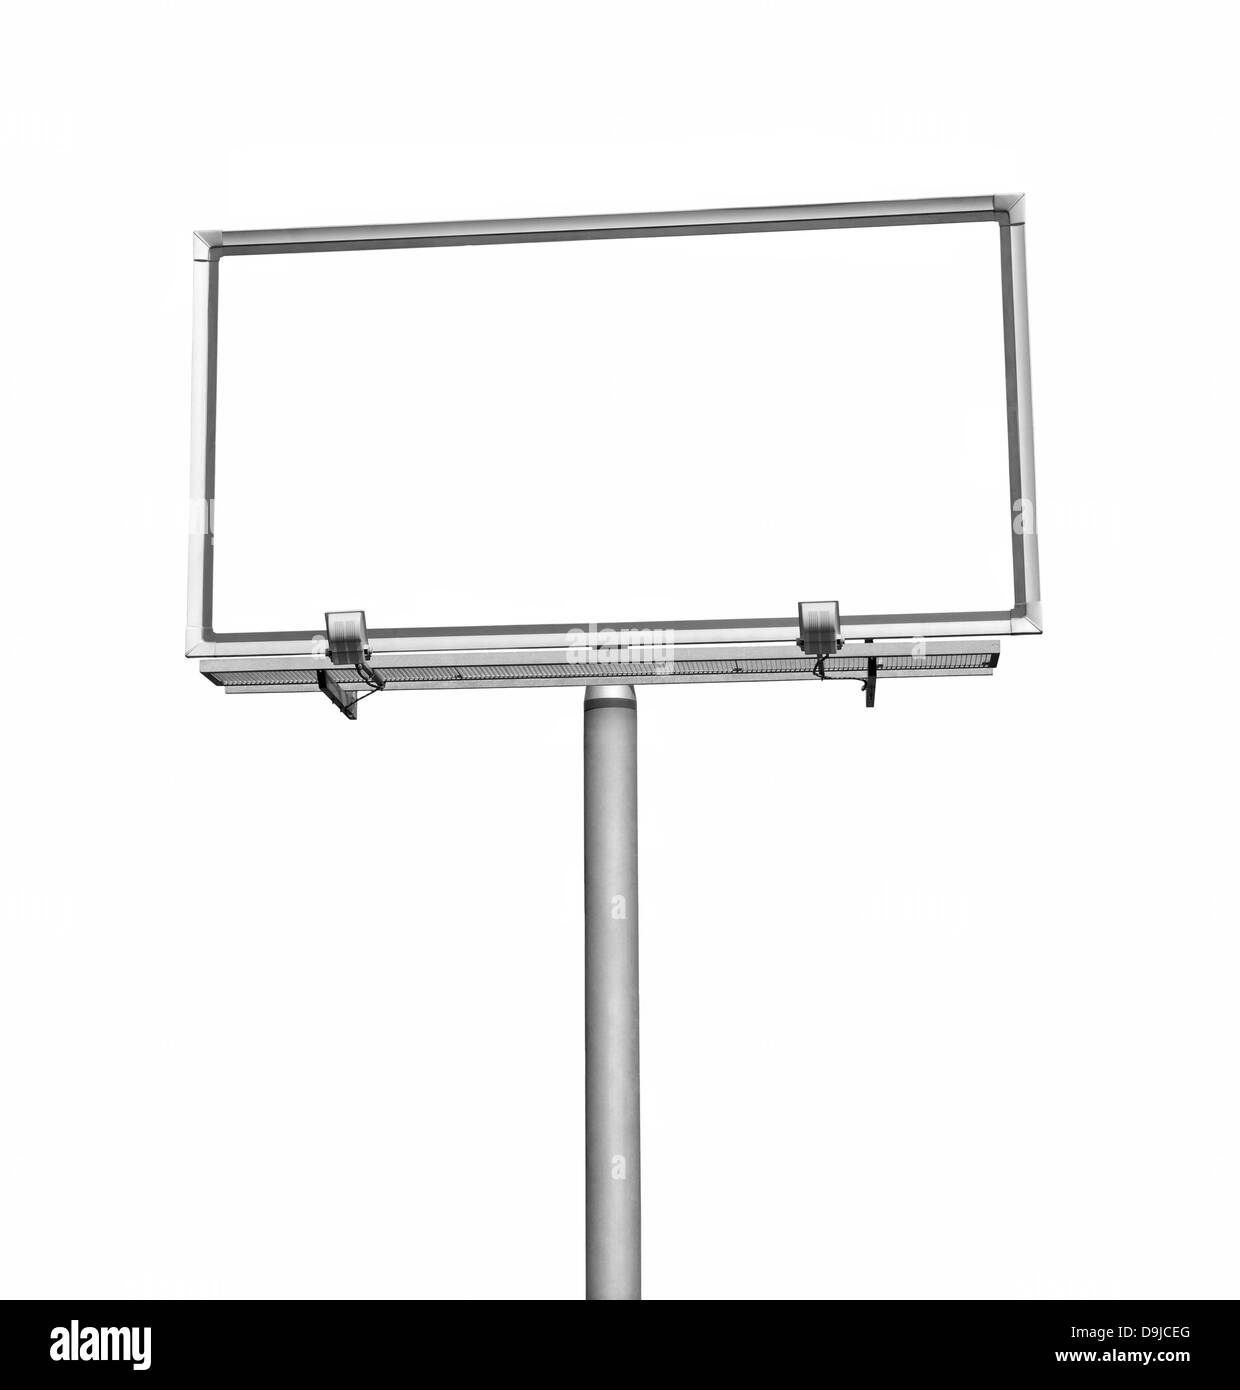 Blank billboard with clipping path - Stock Image